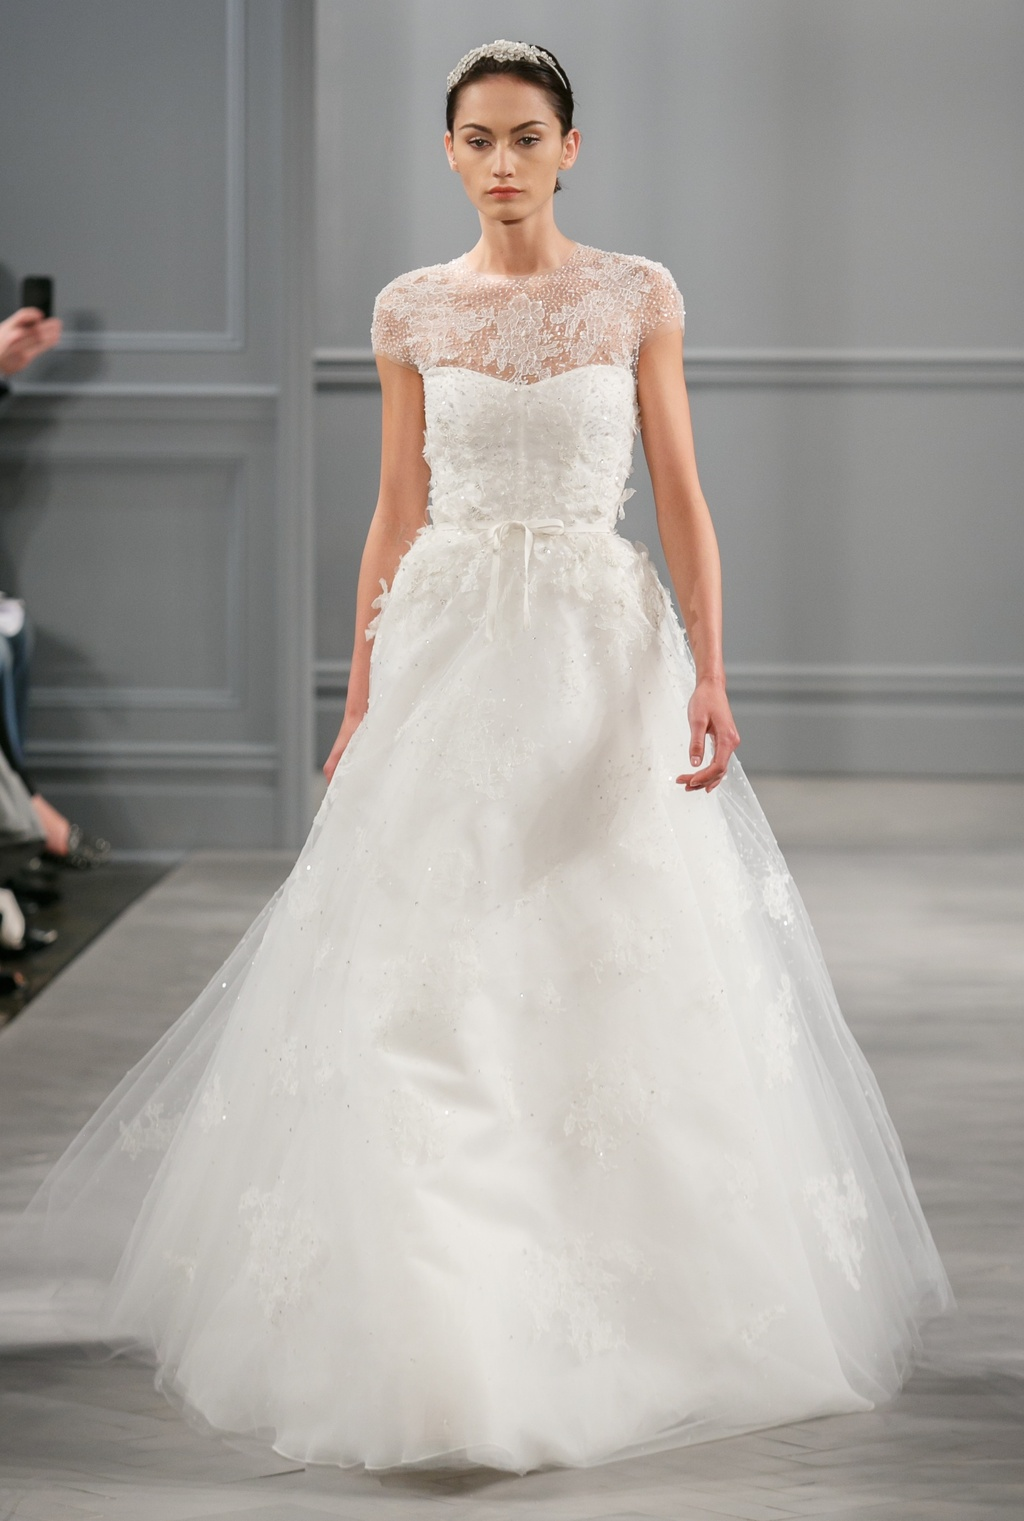 Spring 2014 wedding dress monique lhuillier bridal for Monique lhuillier wedding dress